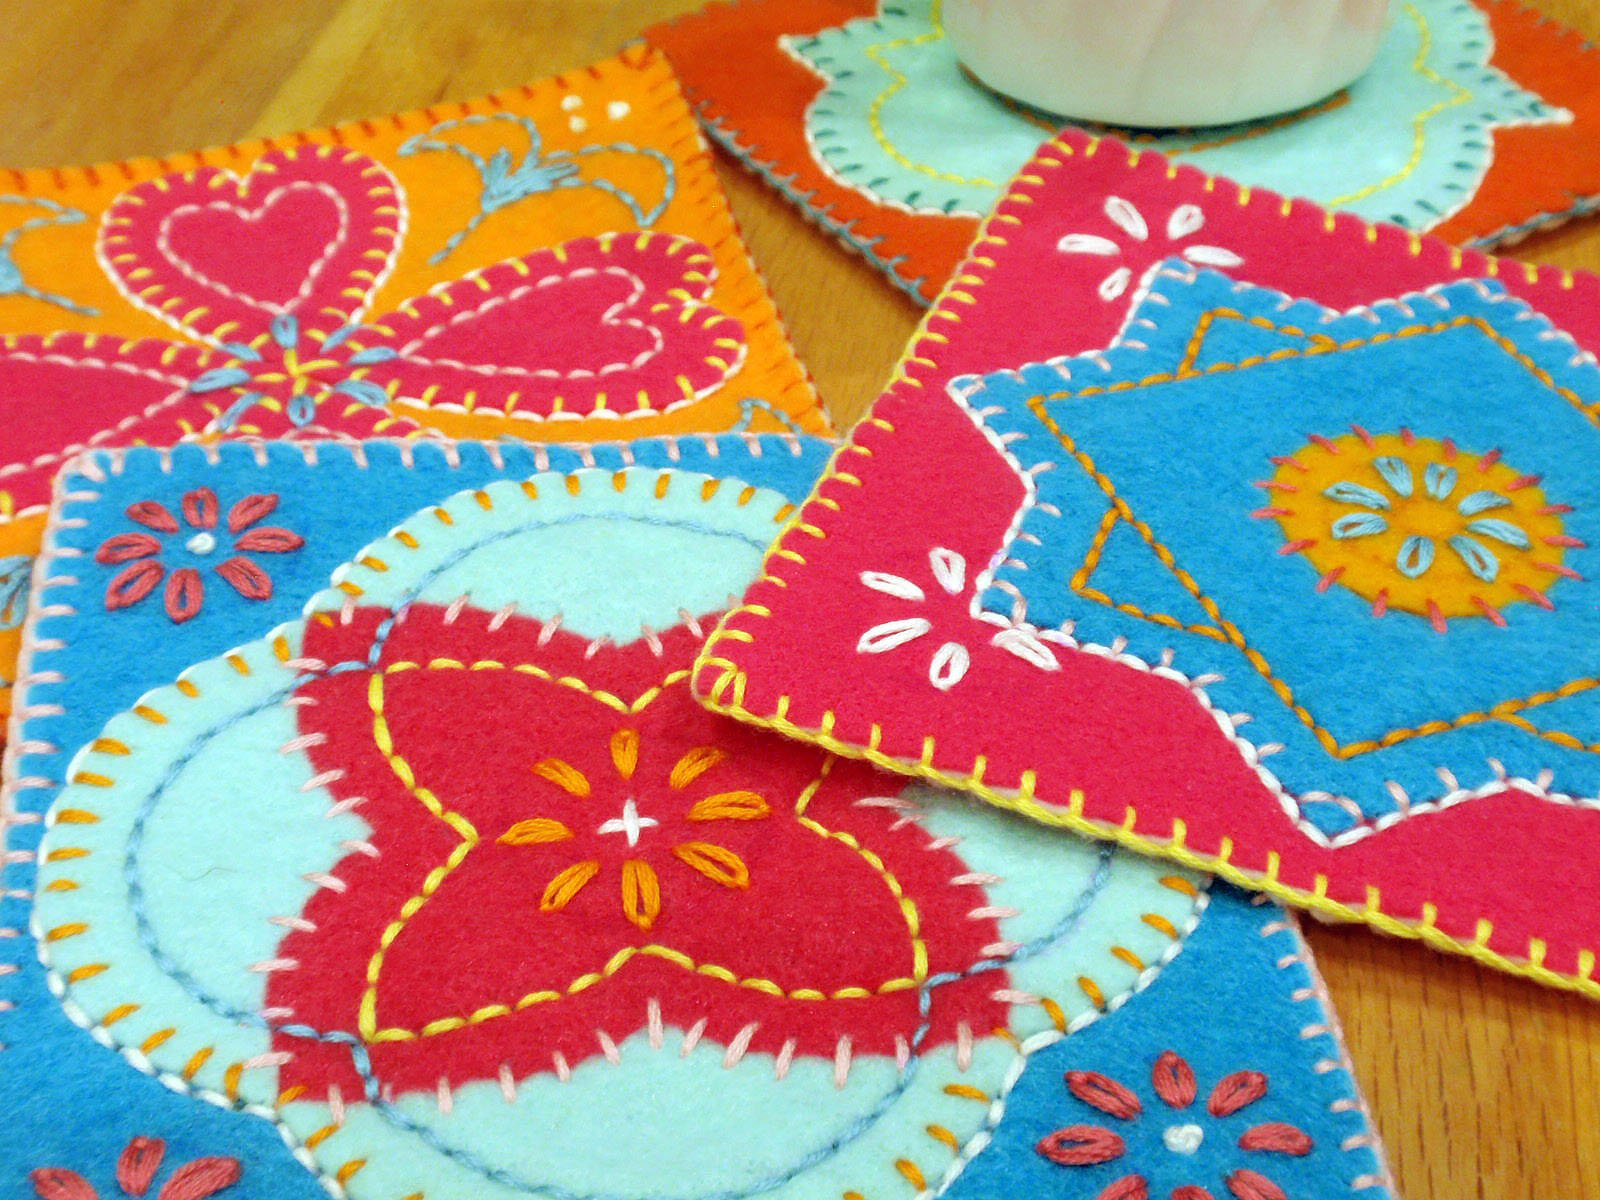 Colorful Felt Coasters (including Free Pattern!)